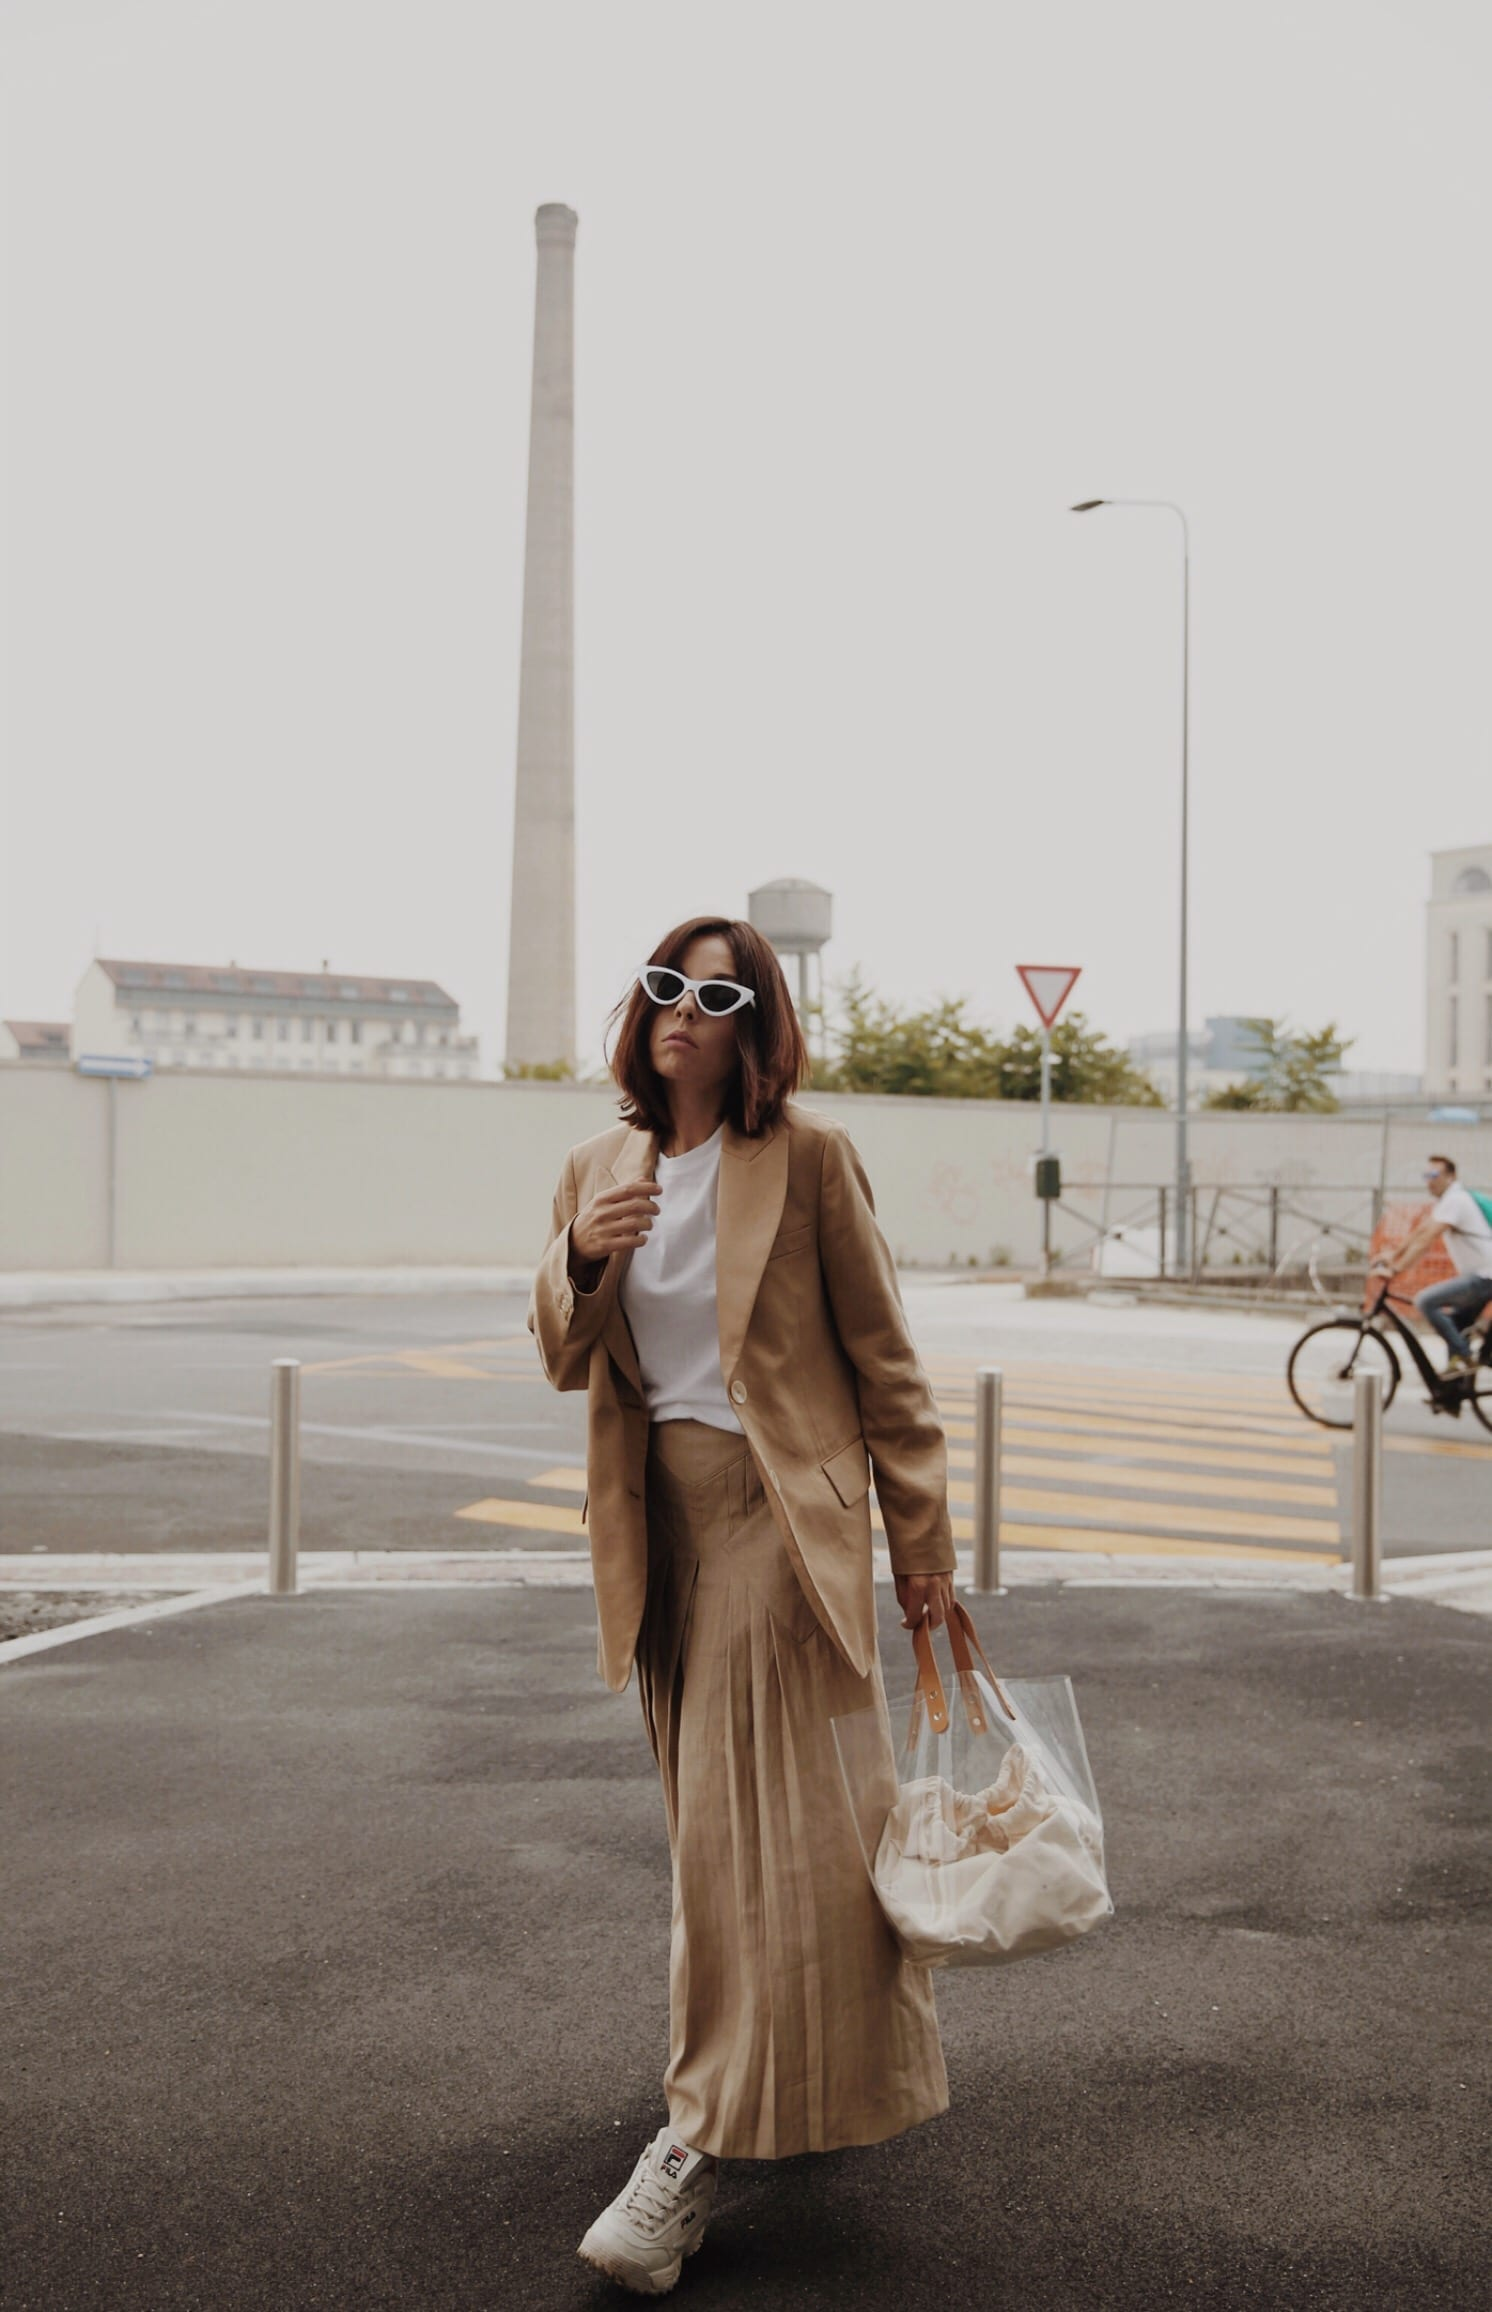 Streetwear culture, theladycracy.it, massimo dutti outfit 2018, fila scarpe outfit 2018, outfit estate 2018, minimal blogger 2018, beige aesthetic, fashion editorial blog 2018, elisa bellino, come vestirsi milano 2018, stile minimal come vestirsi